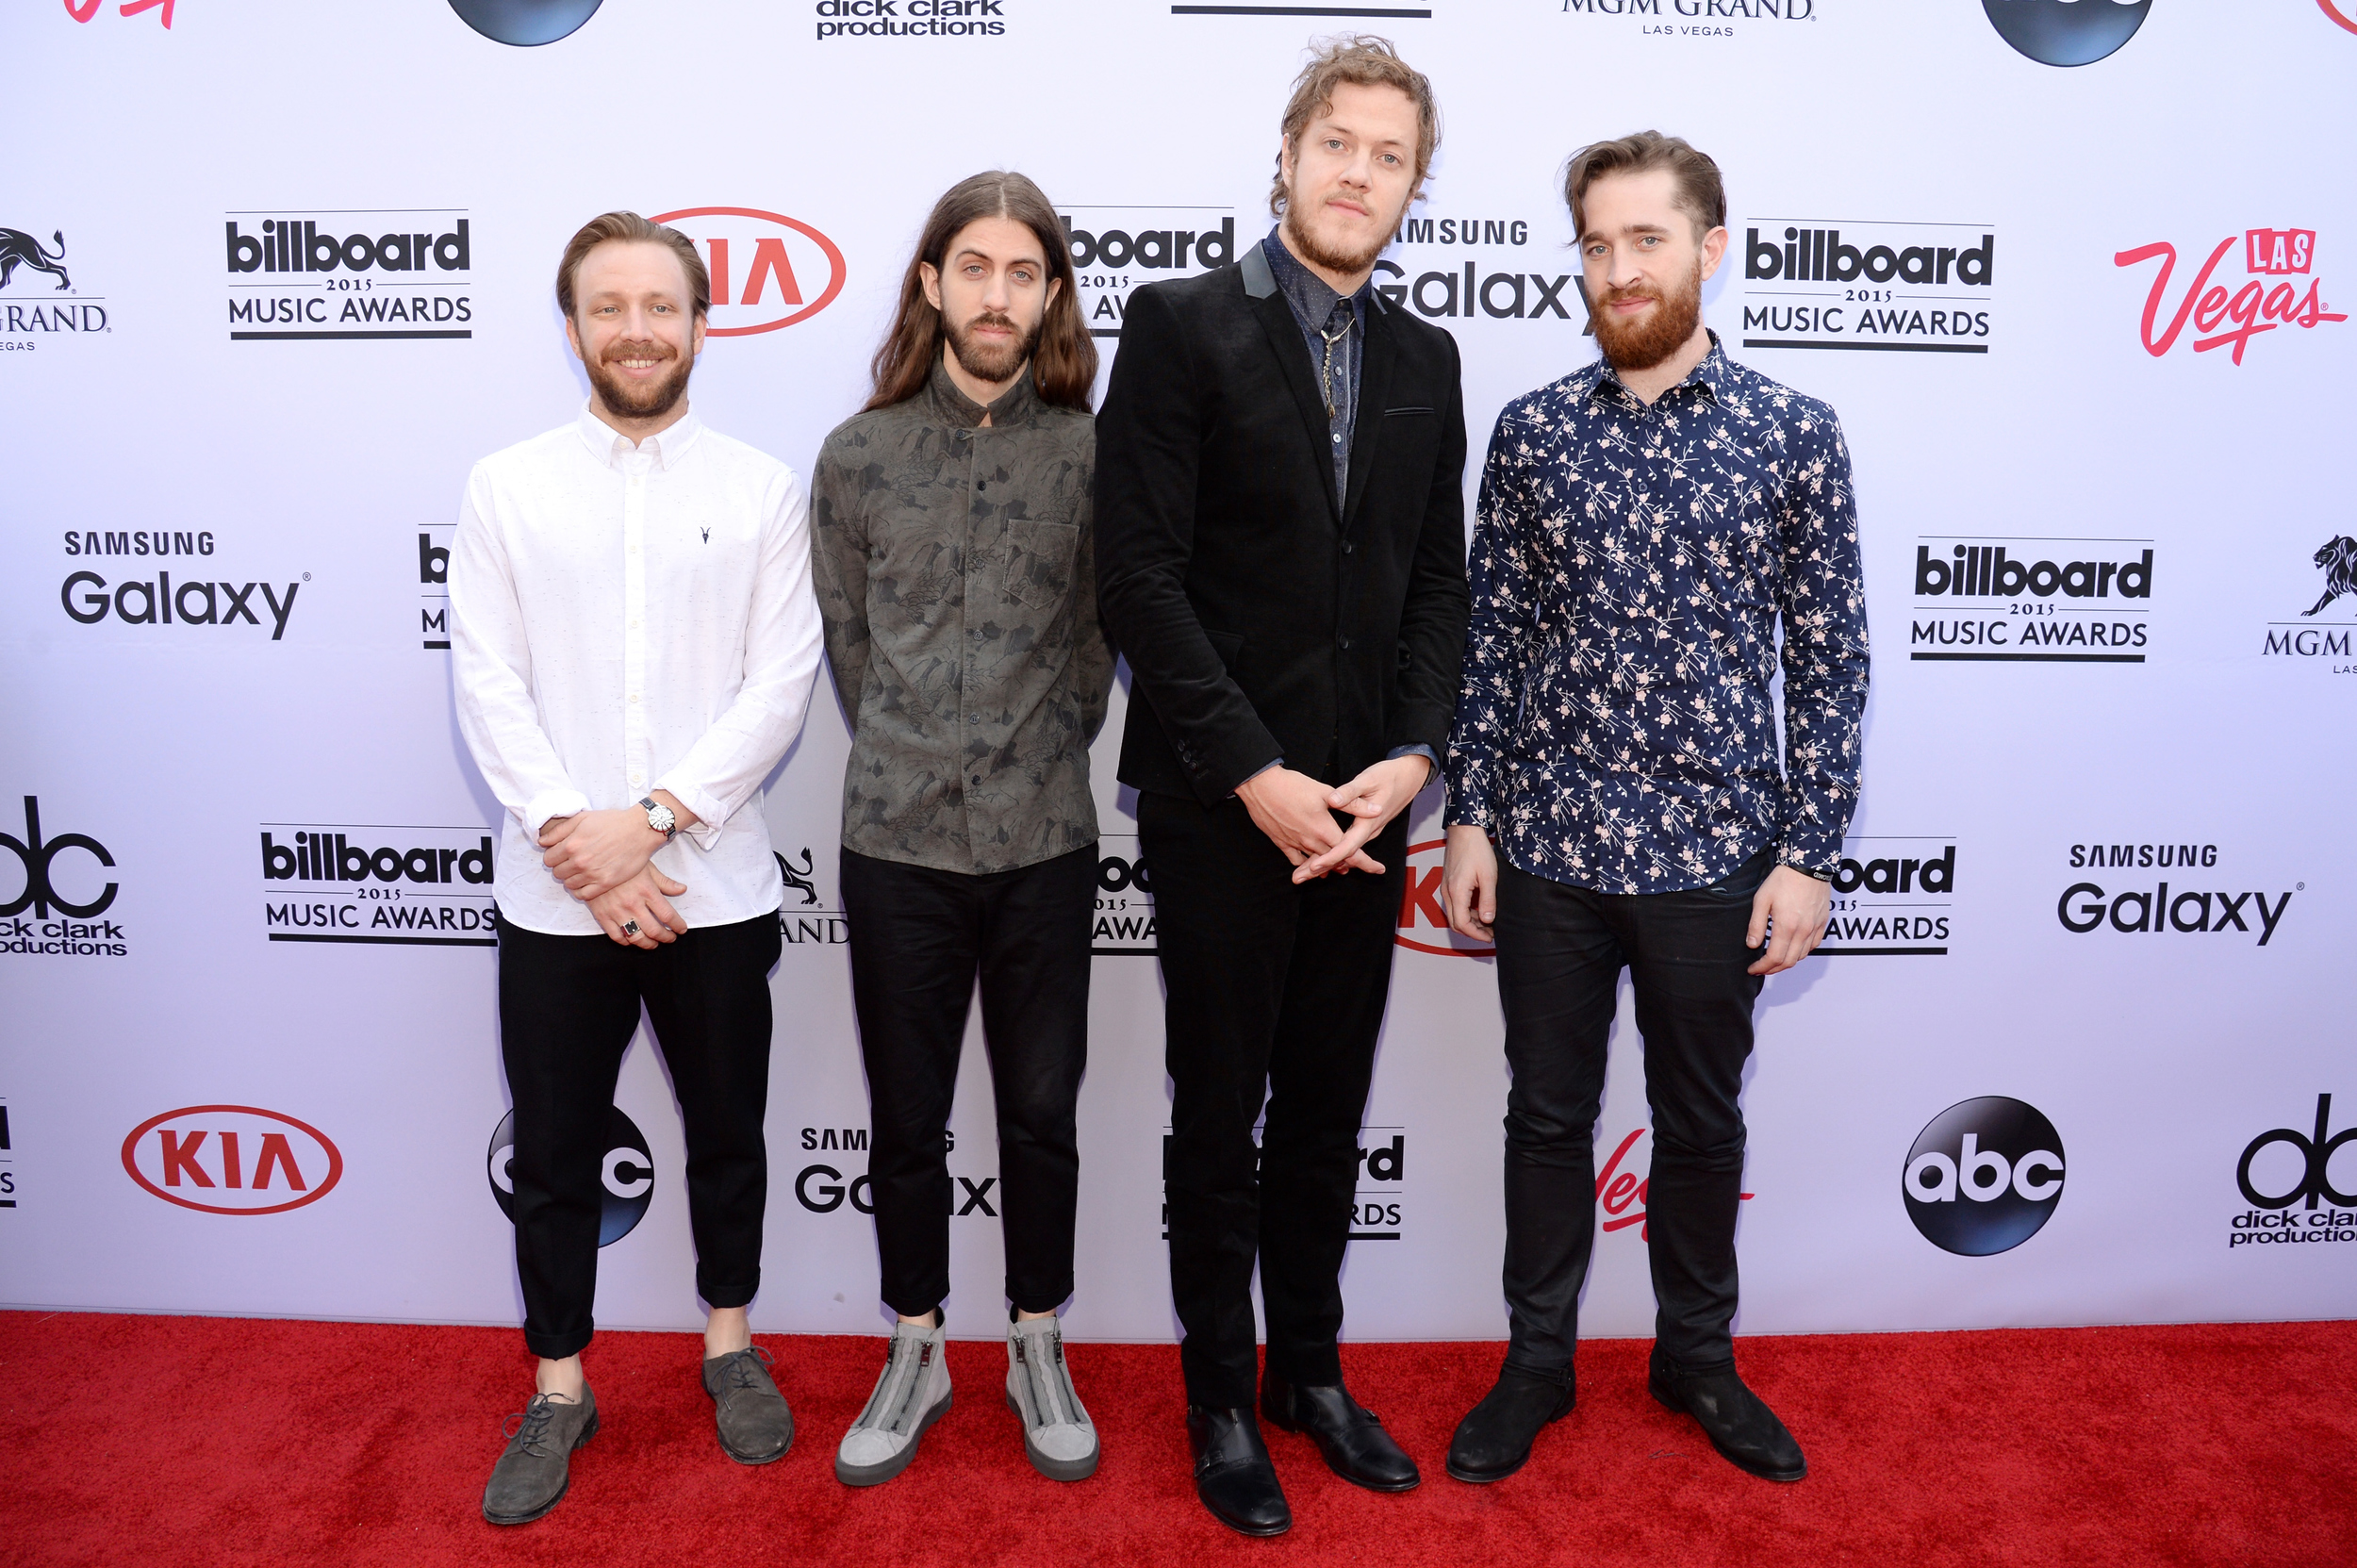 Billboard musik Awards 2015